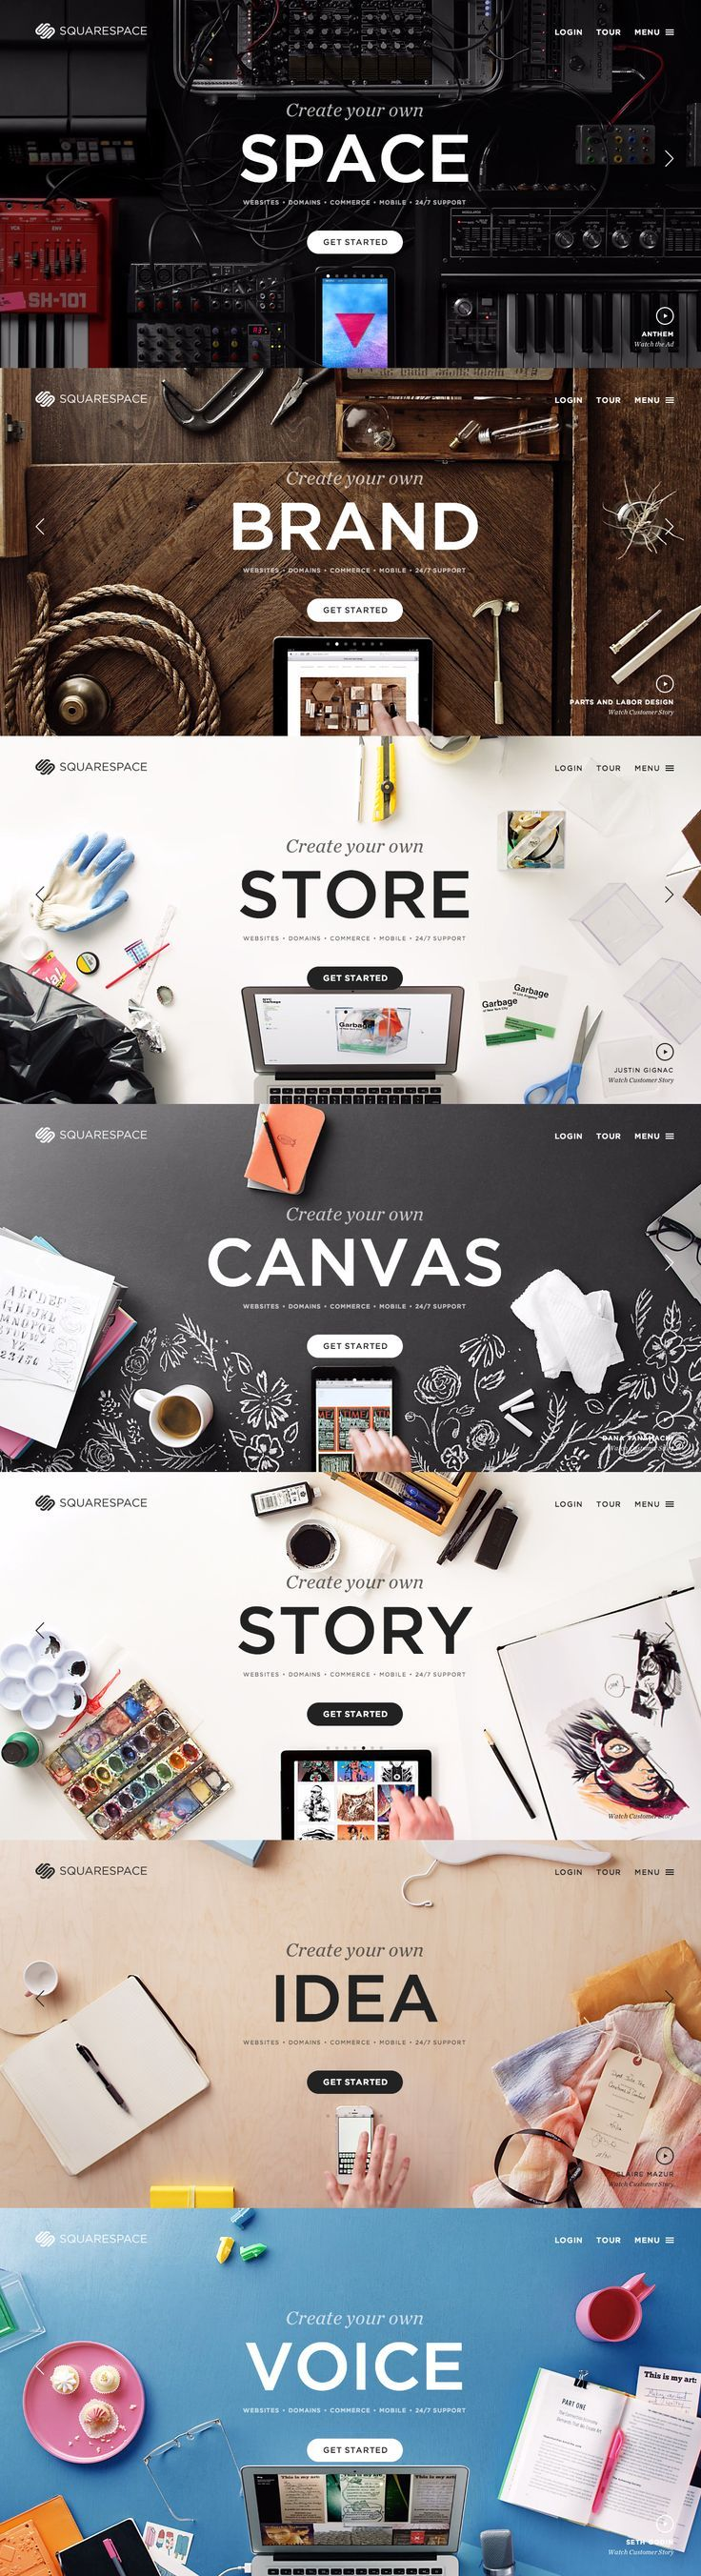 Squarespace – new homepage